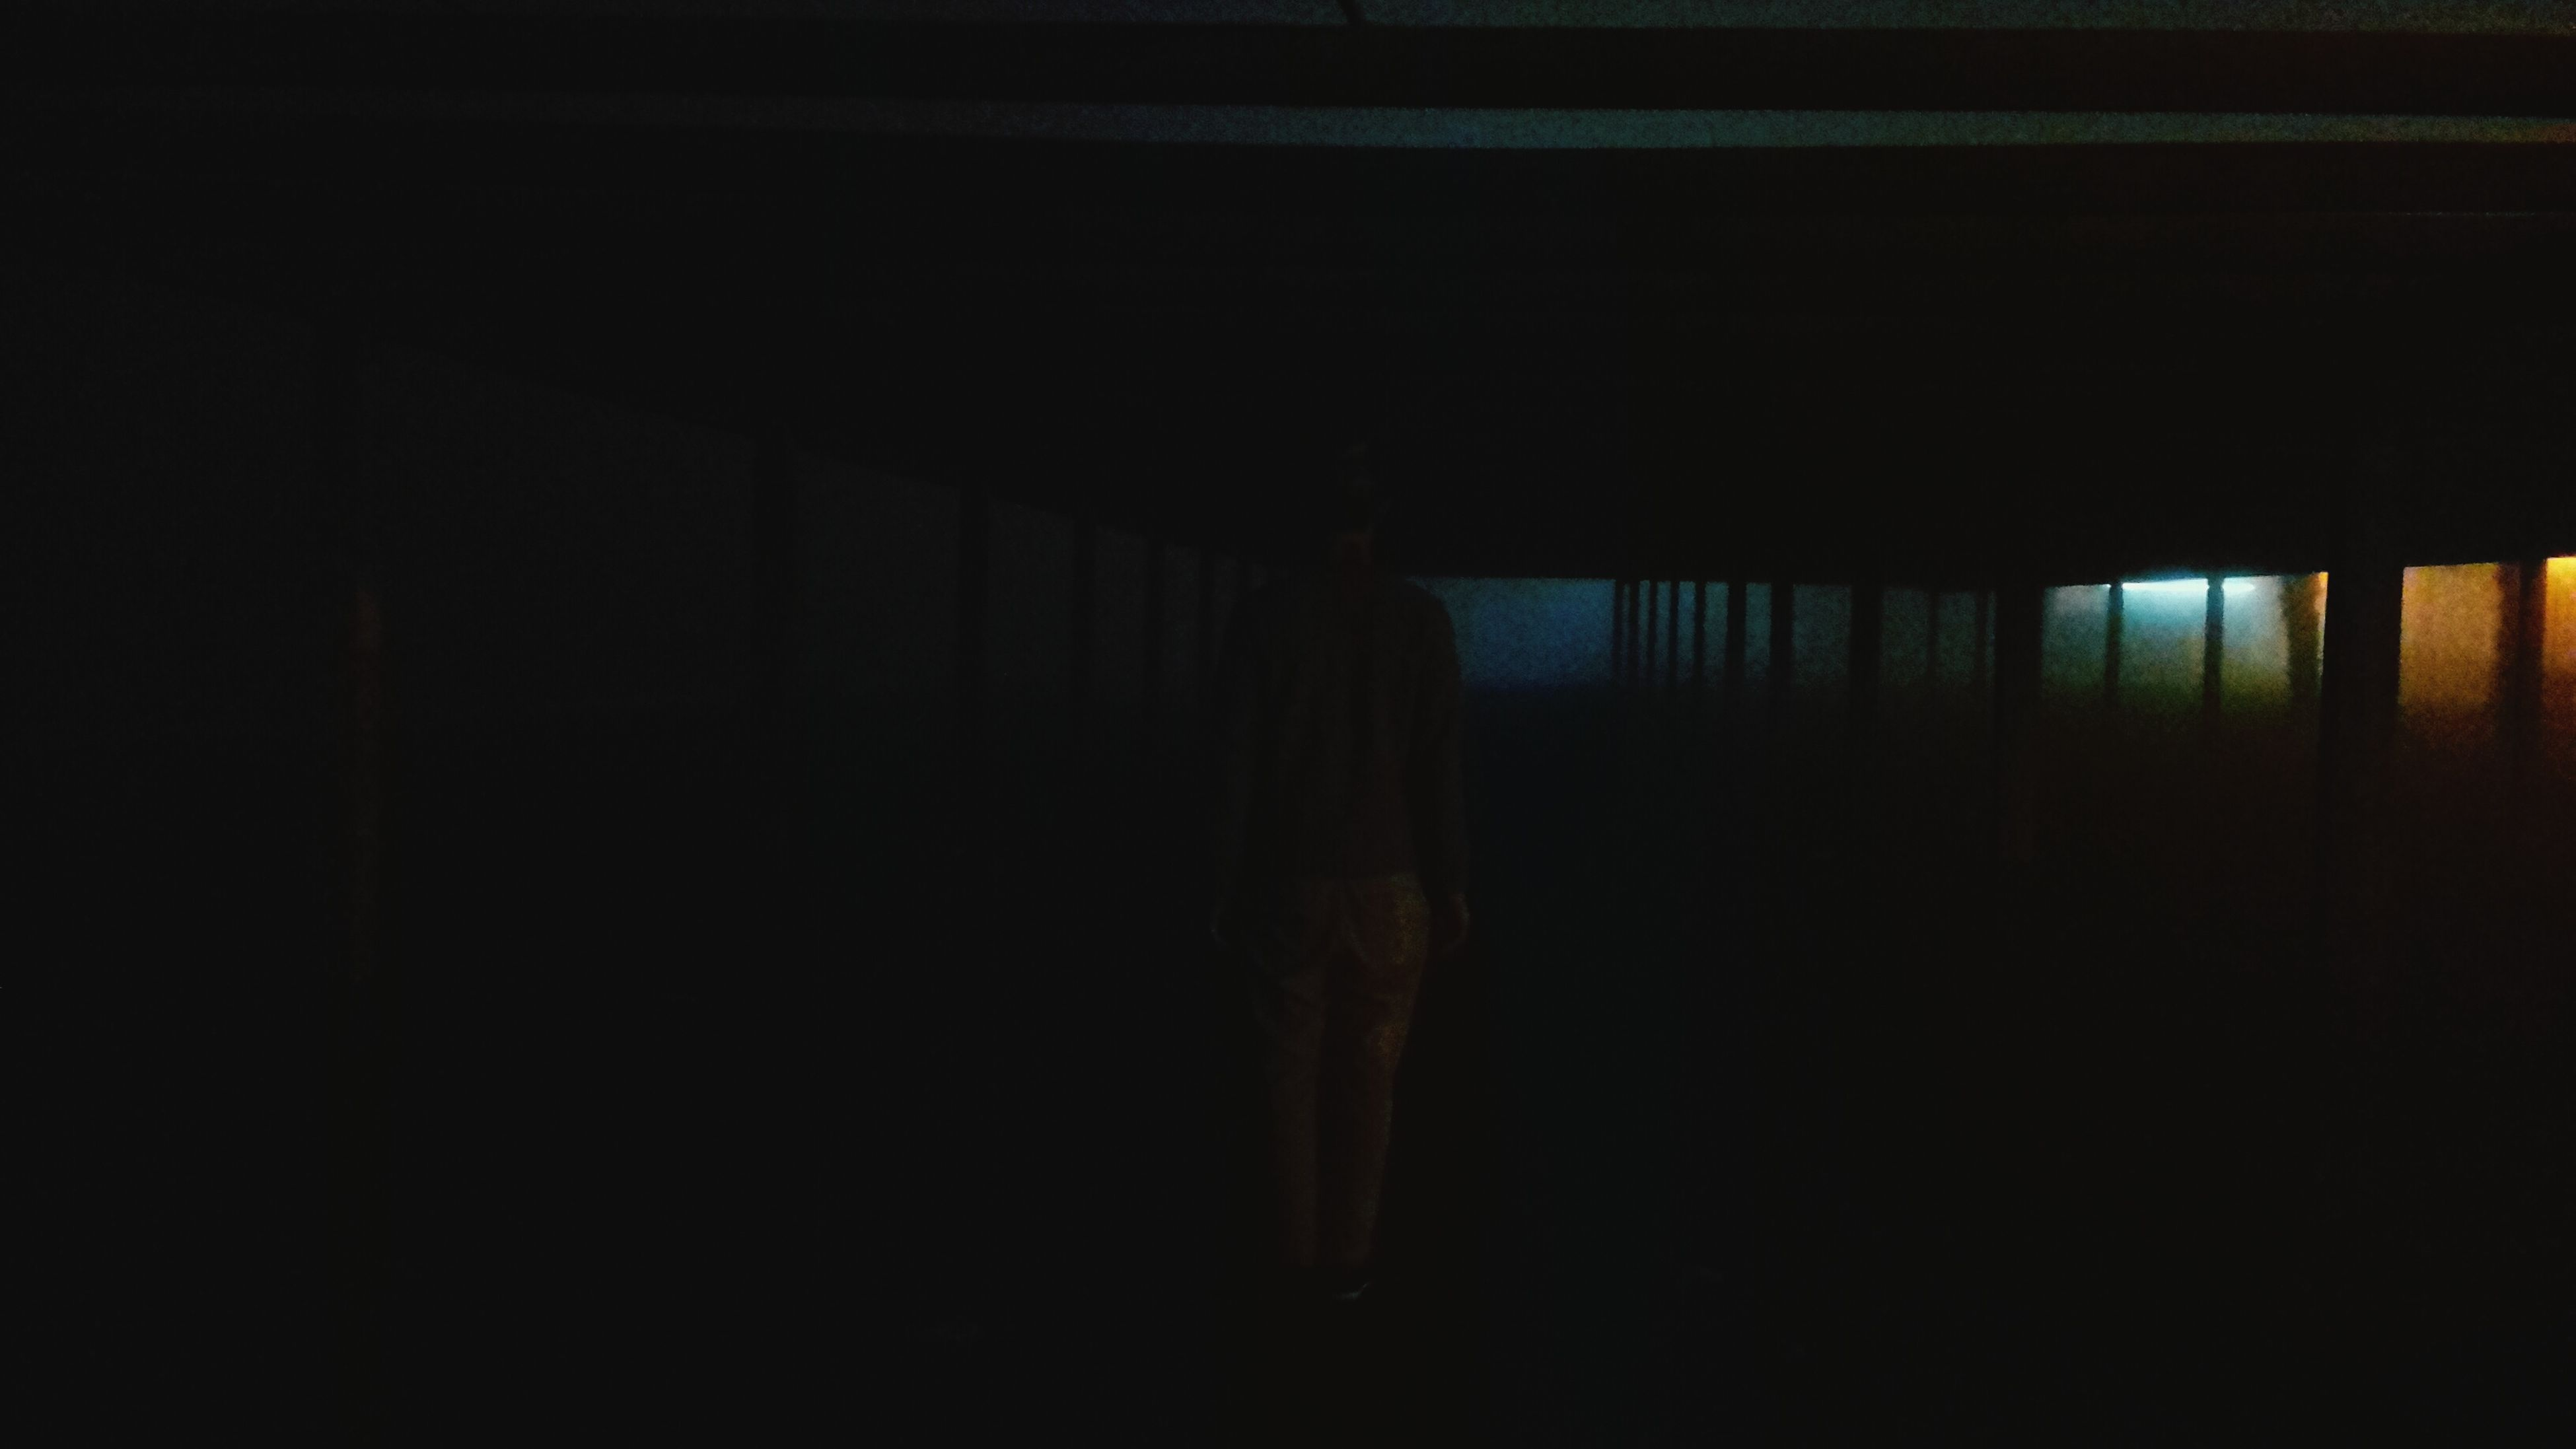 indoors, silhouette, dark, rear view, window, standing, lifestyles, built structure, architecture, men, person, full length, copy space, leisure activity, walking, sunlight, side view, night